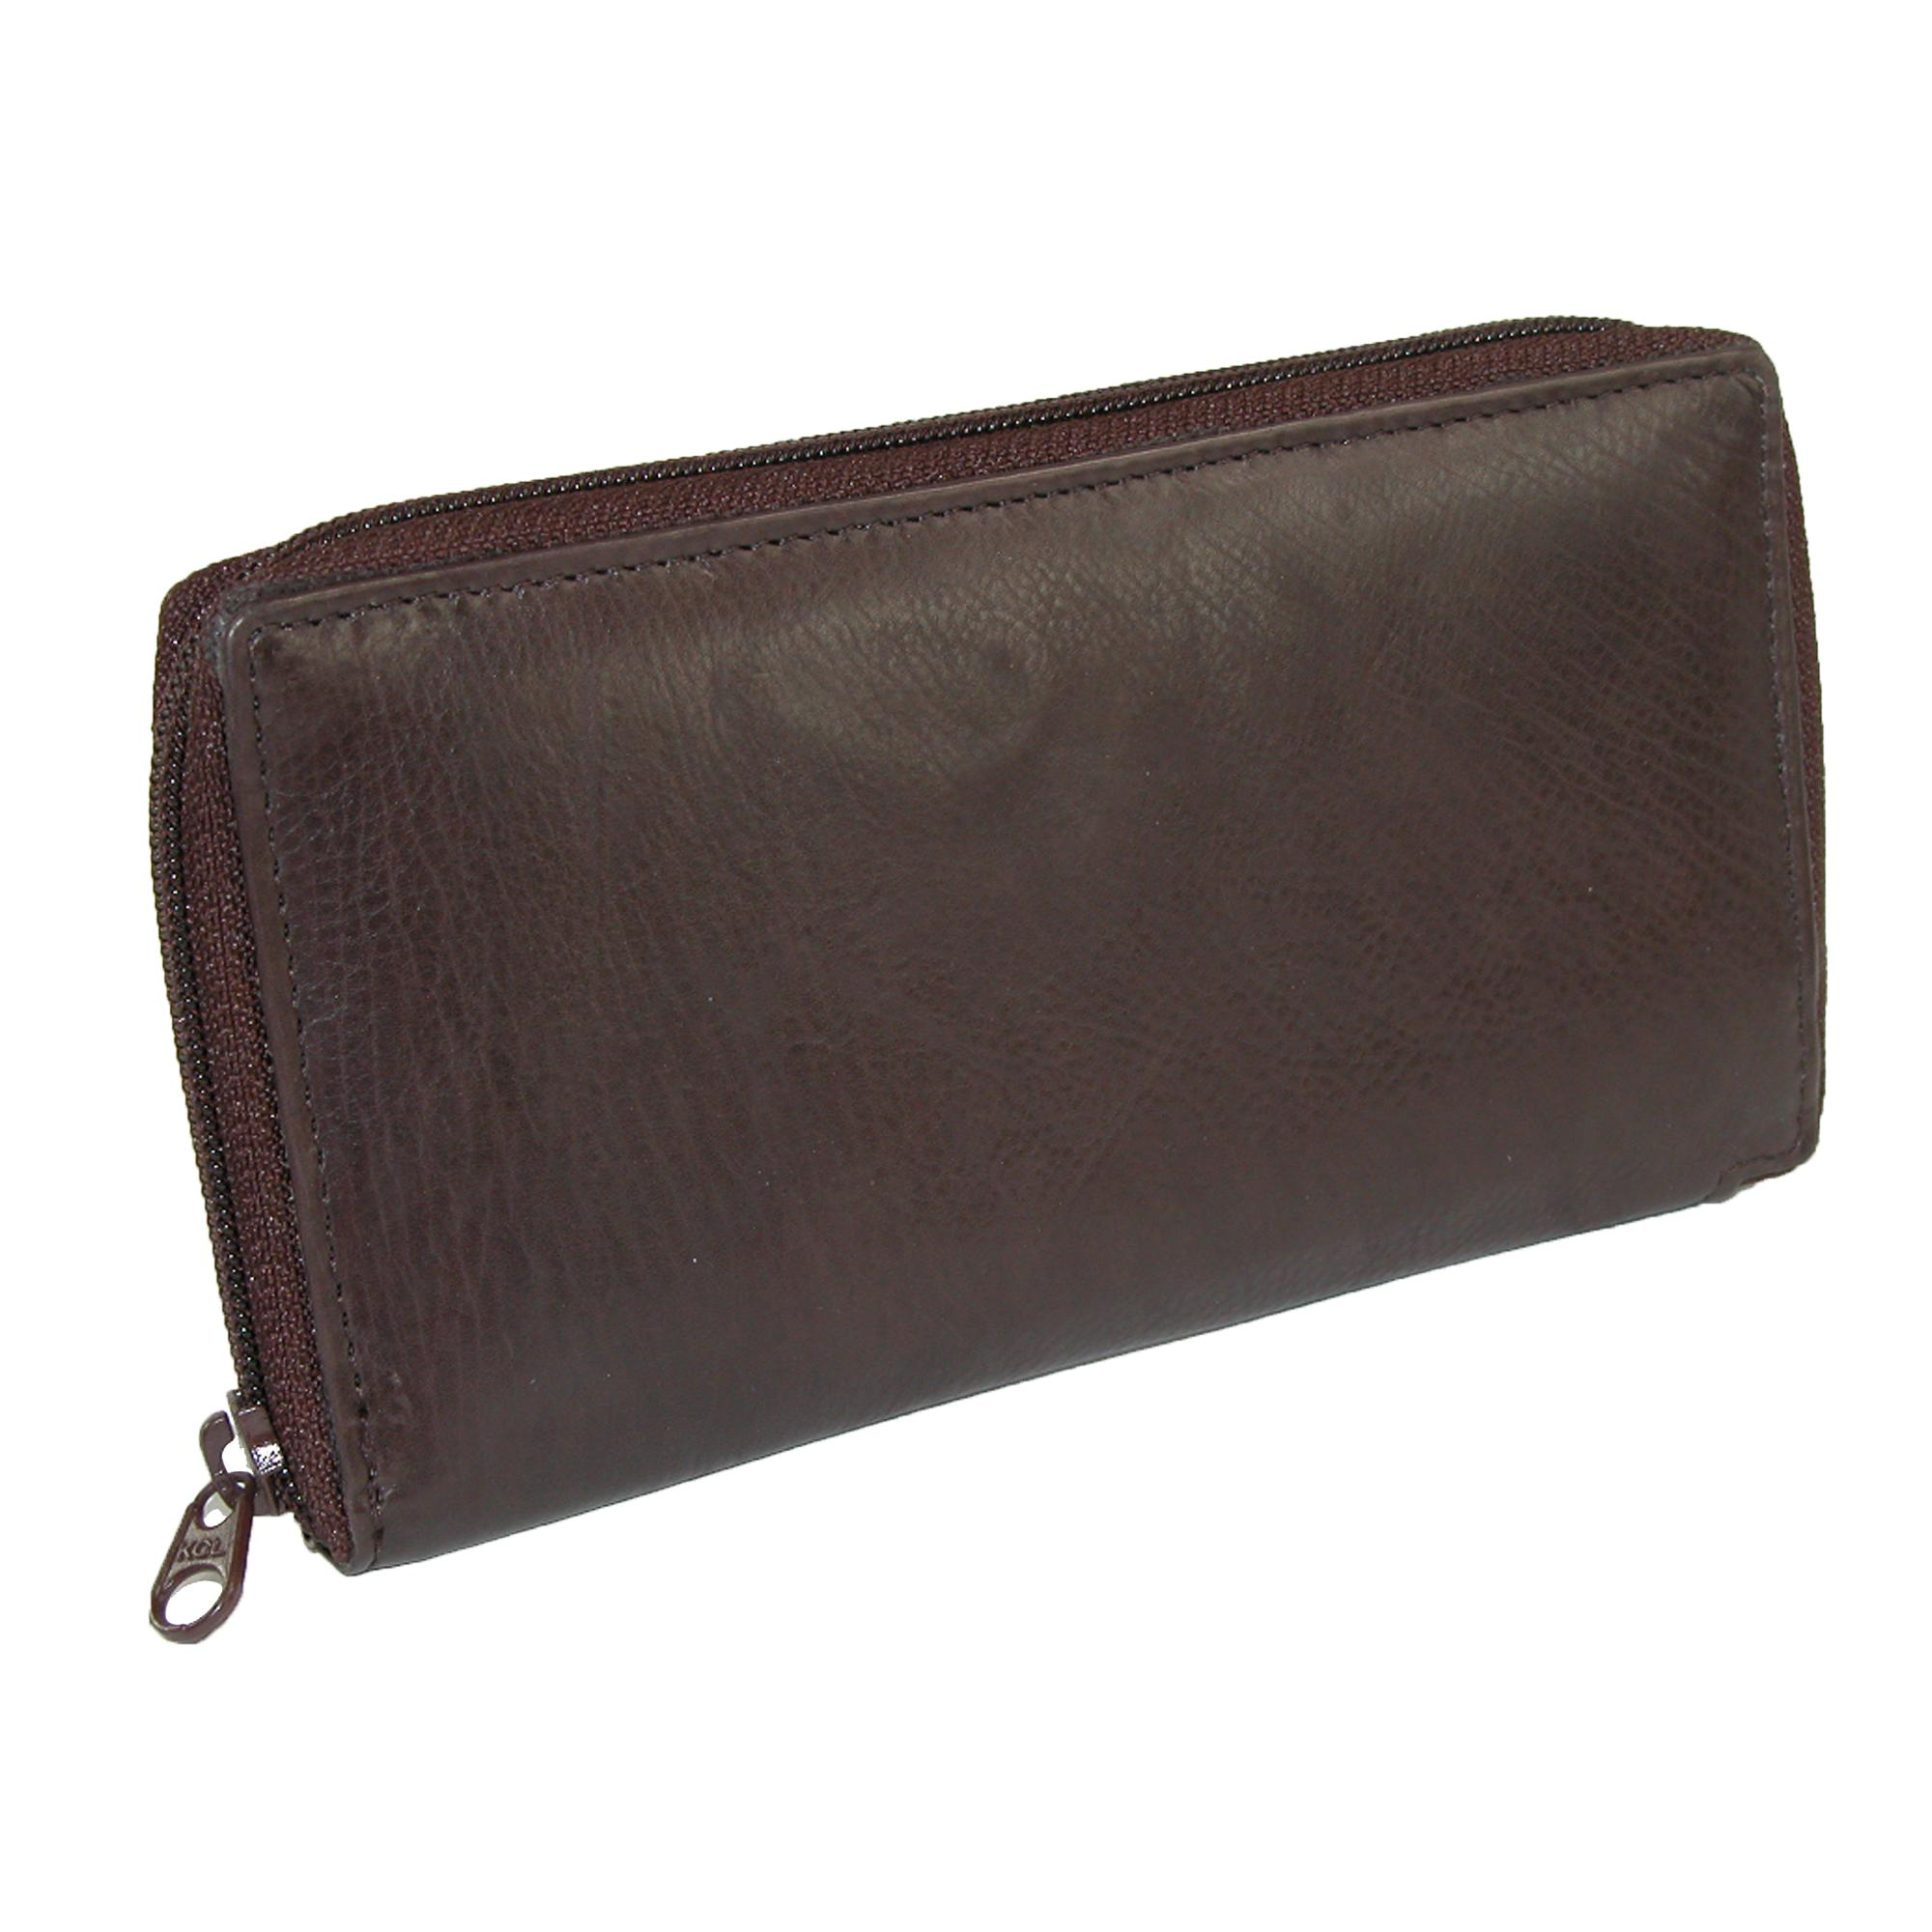 Paul_&_Taylor_Leather_Deluxe_Zip_Around_Checkbook_Cover_Wallet_